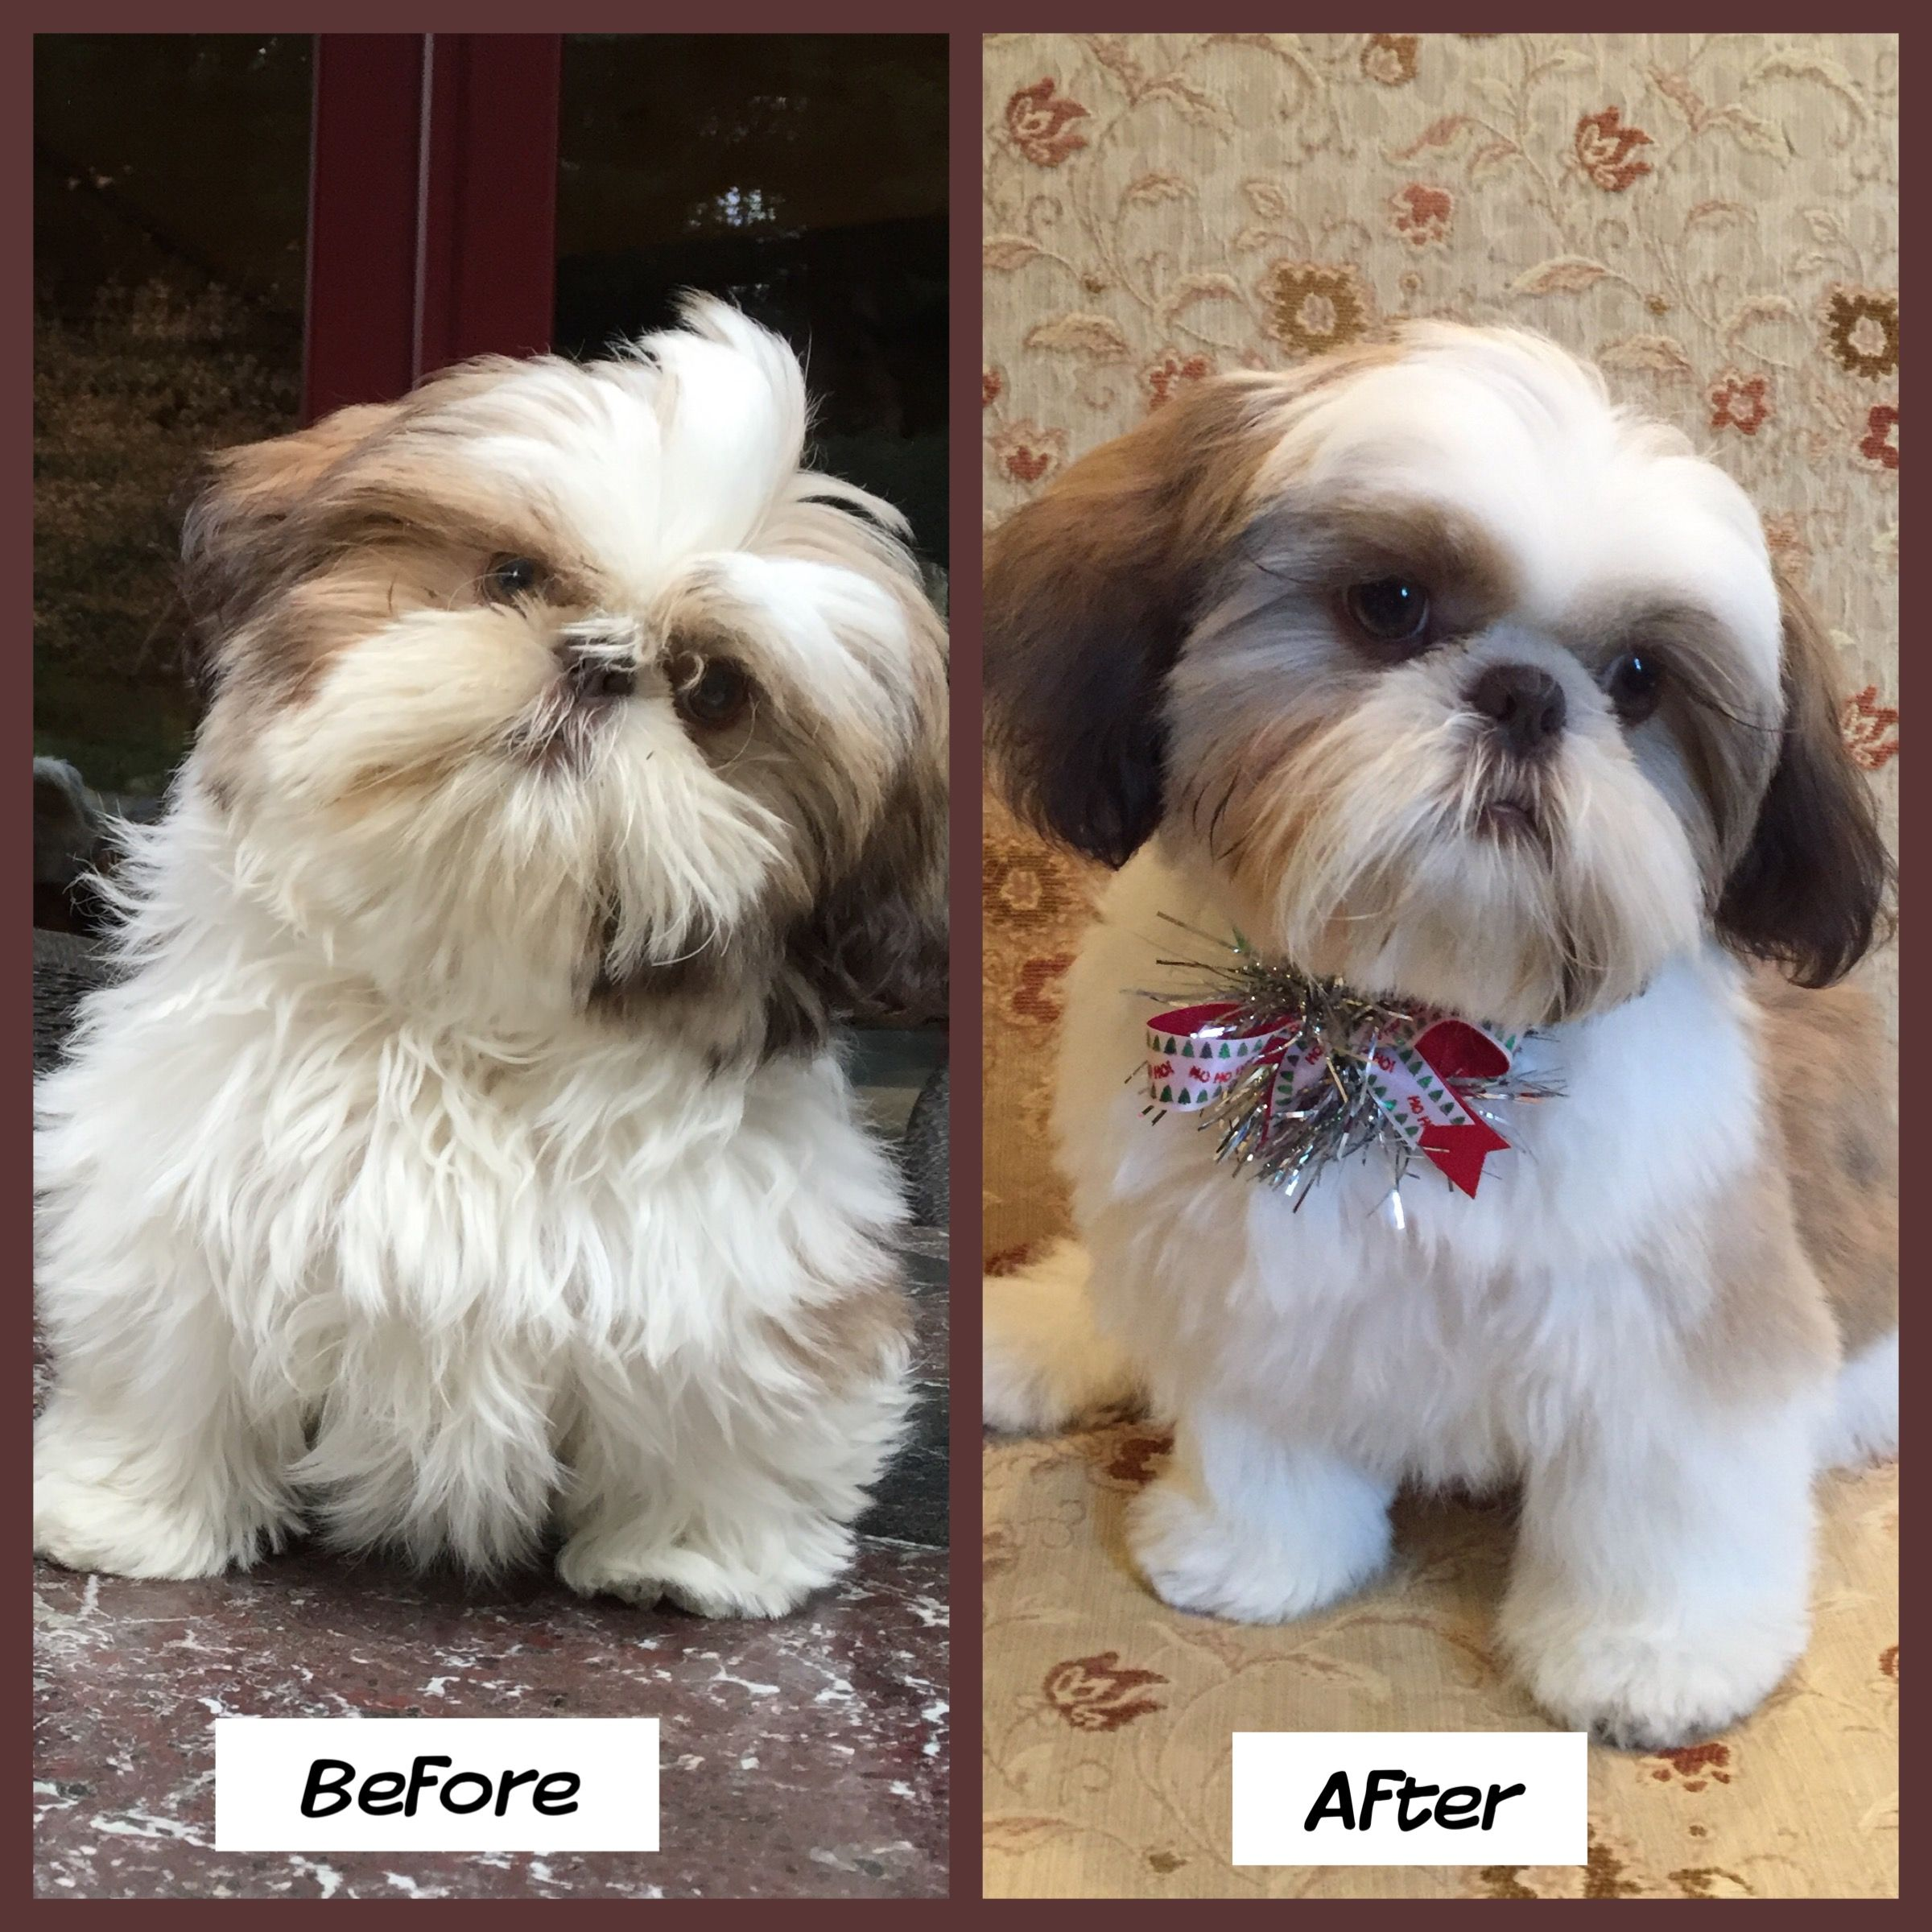 Gidget 6months Old Before And After Her First Trip To The Groomer Puppy Grooming Shih Tzu Puppy Shih Tzu Puppy Haircuts